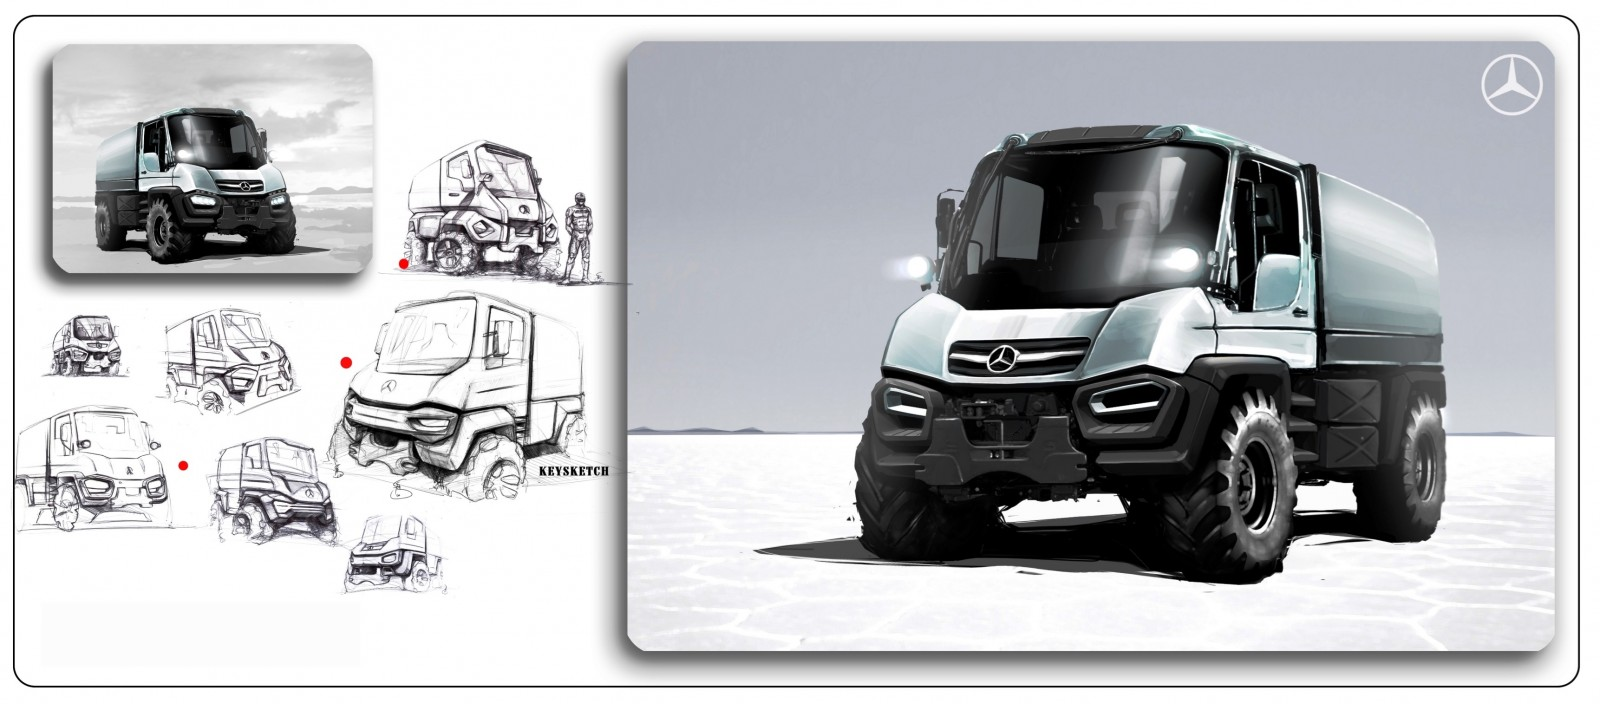 2015 Unimog U218 and U423 Upfit Showcase 118